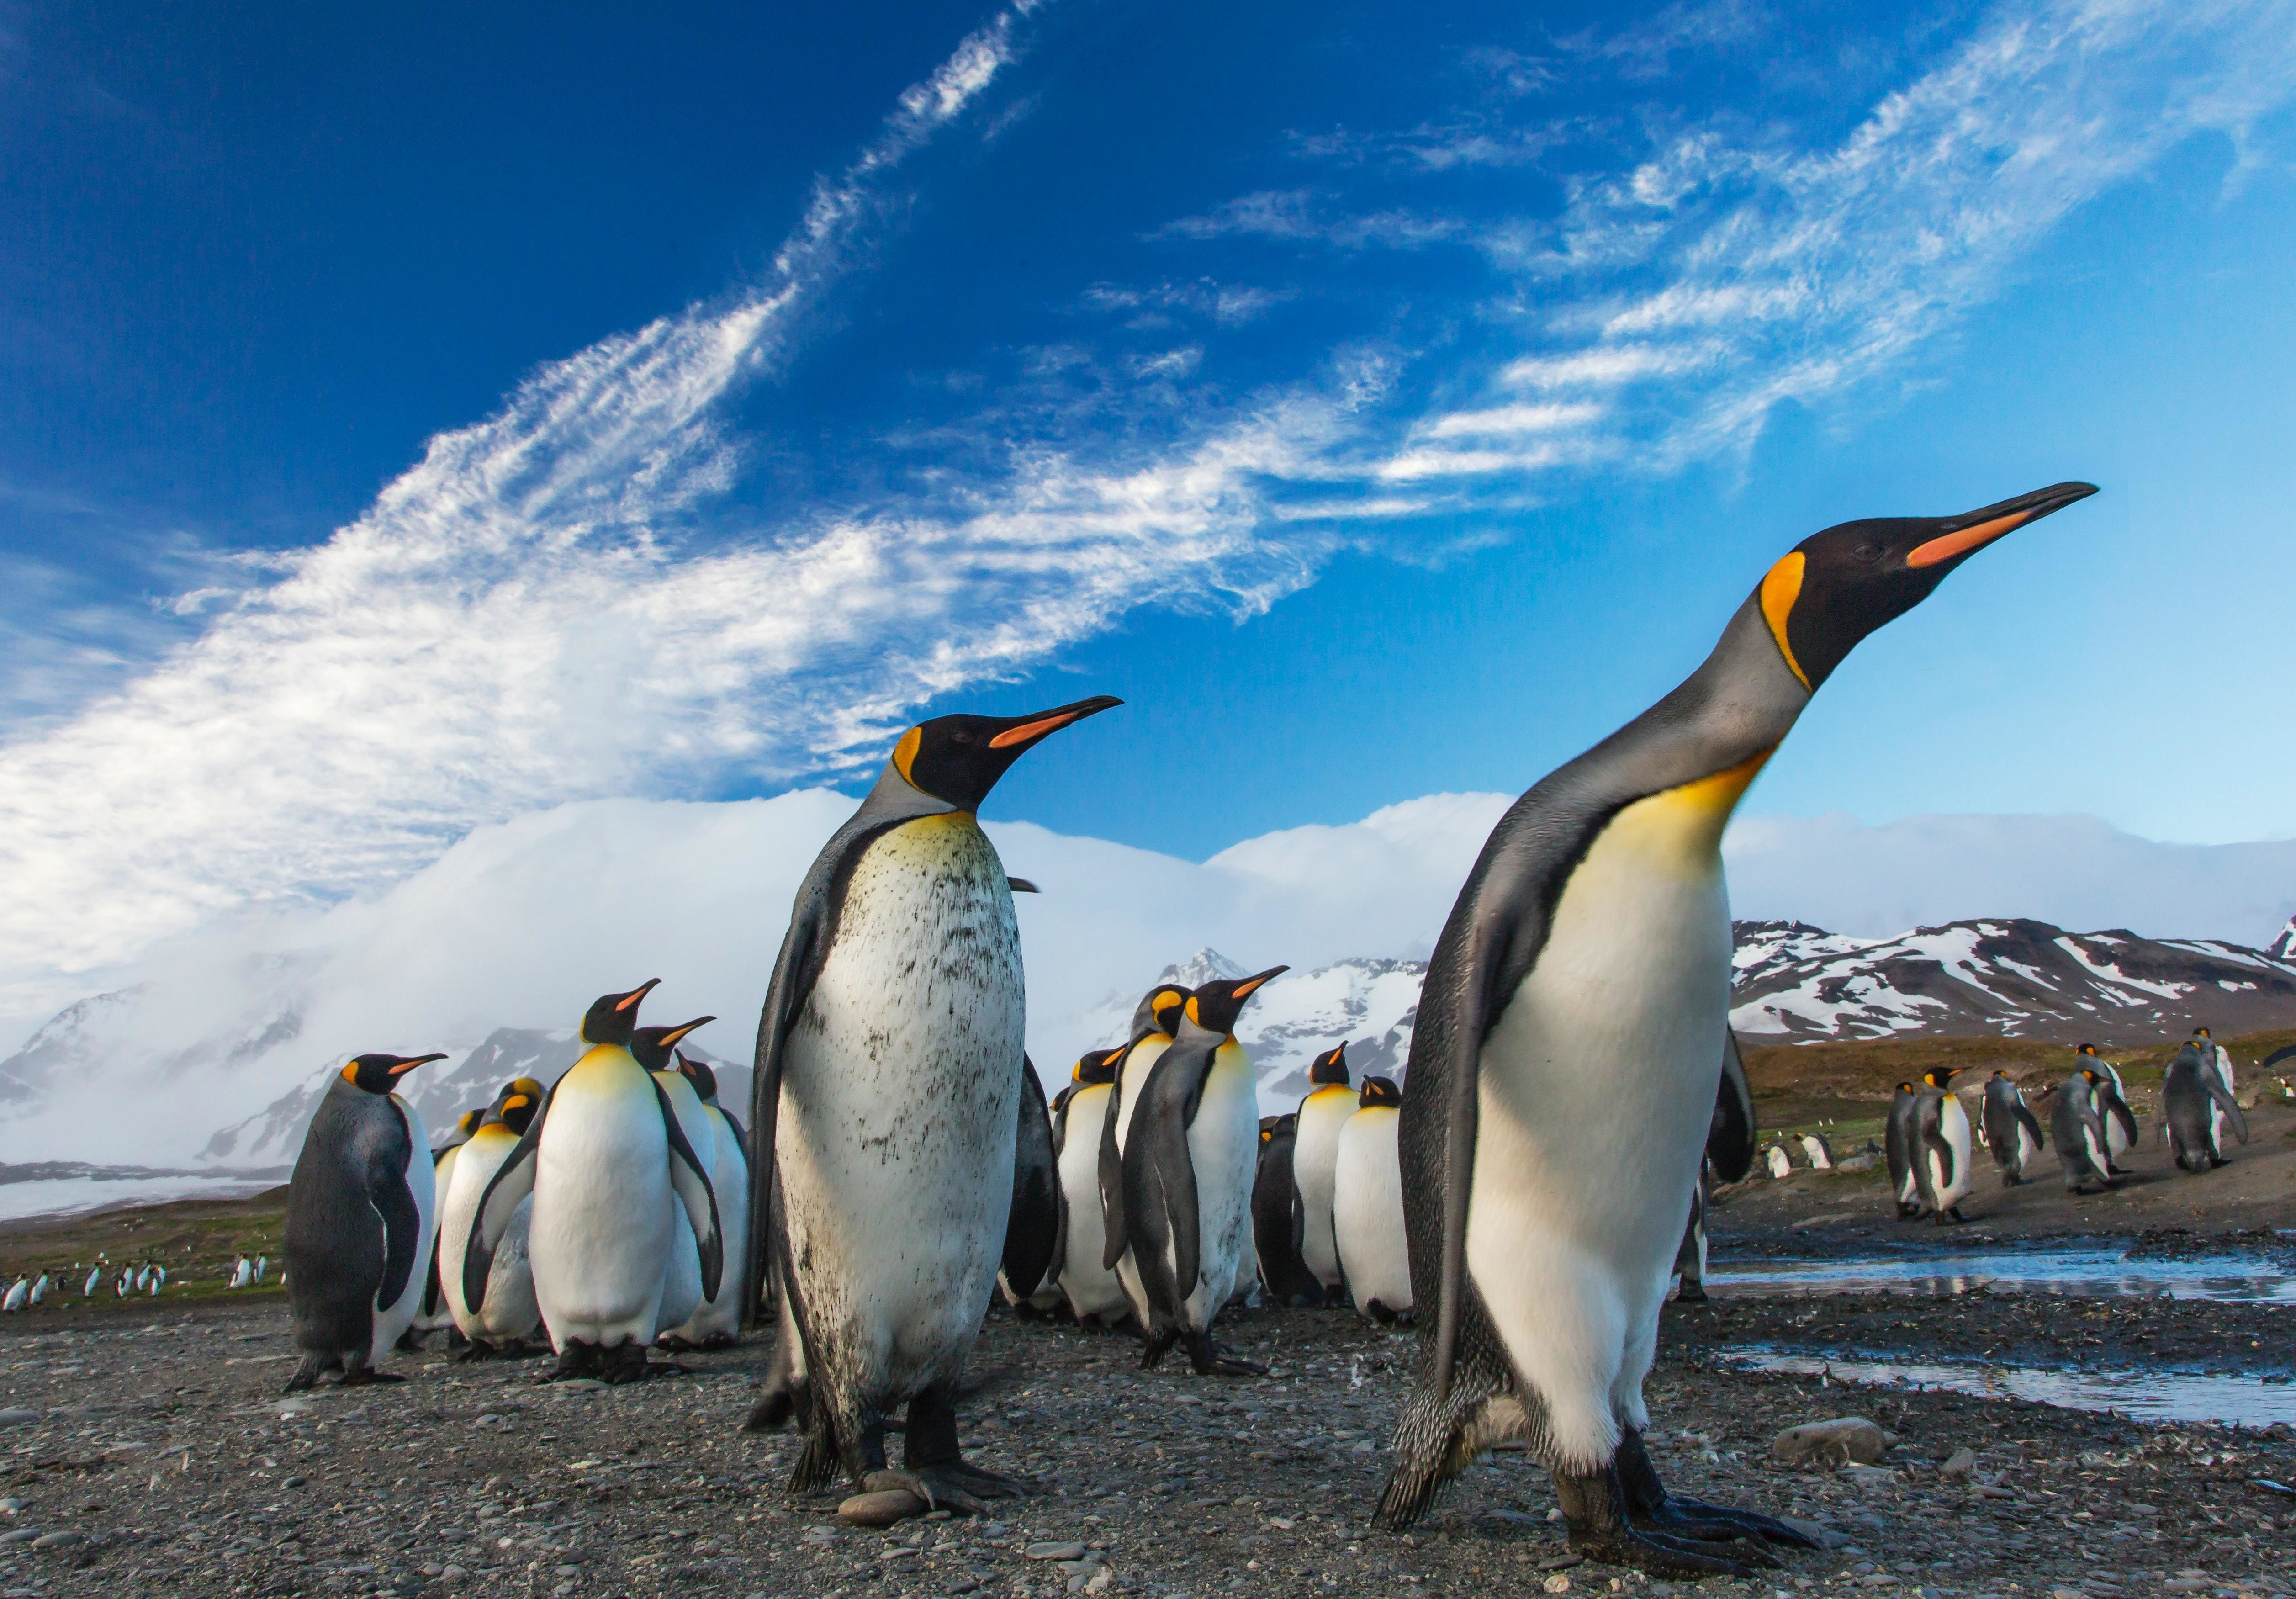 emperor penguin colonies endangered species act protection climate change environment sea land ice global warming extinction government policy trade shipping routes